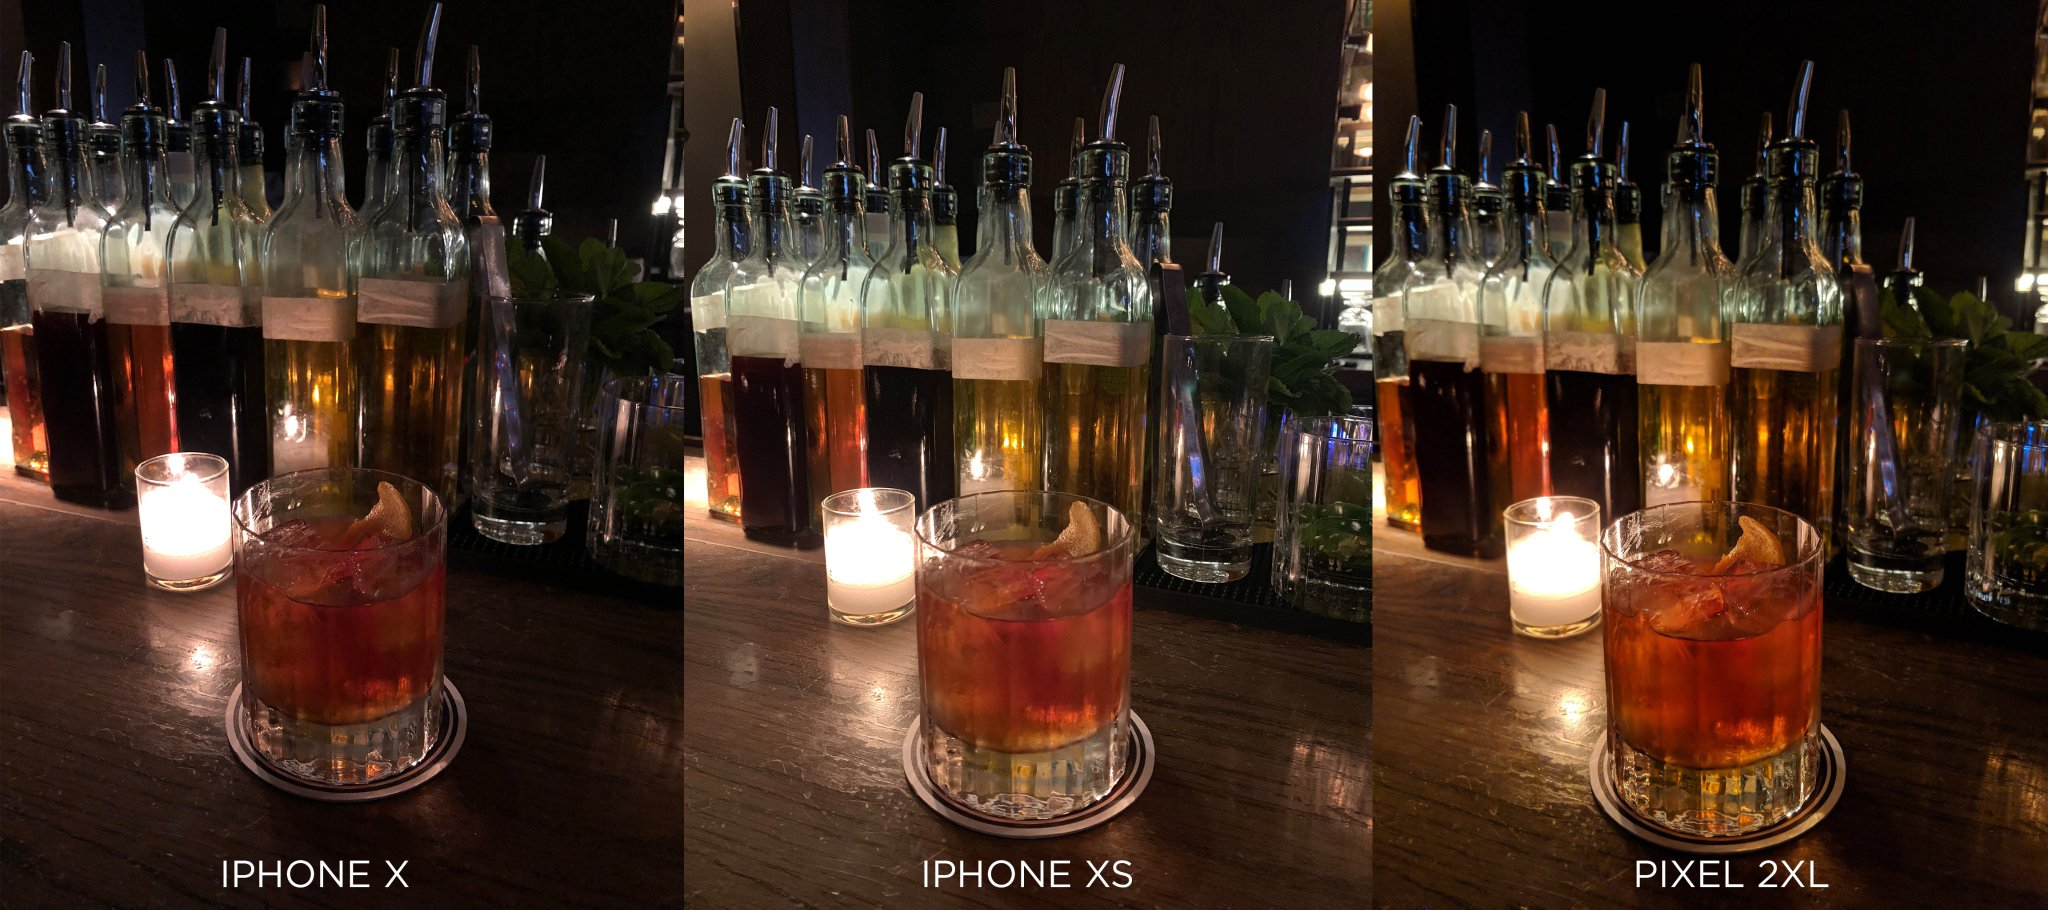 camara iPhone X Vs iPhone Xs Vs Pixel 2